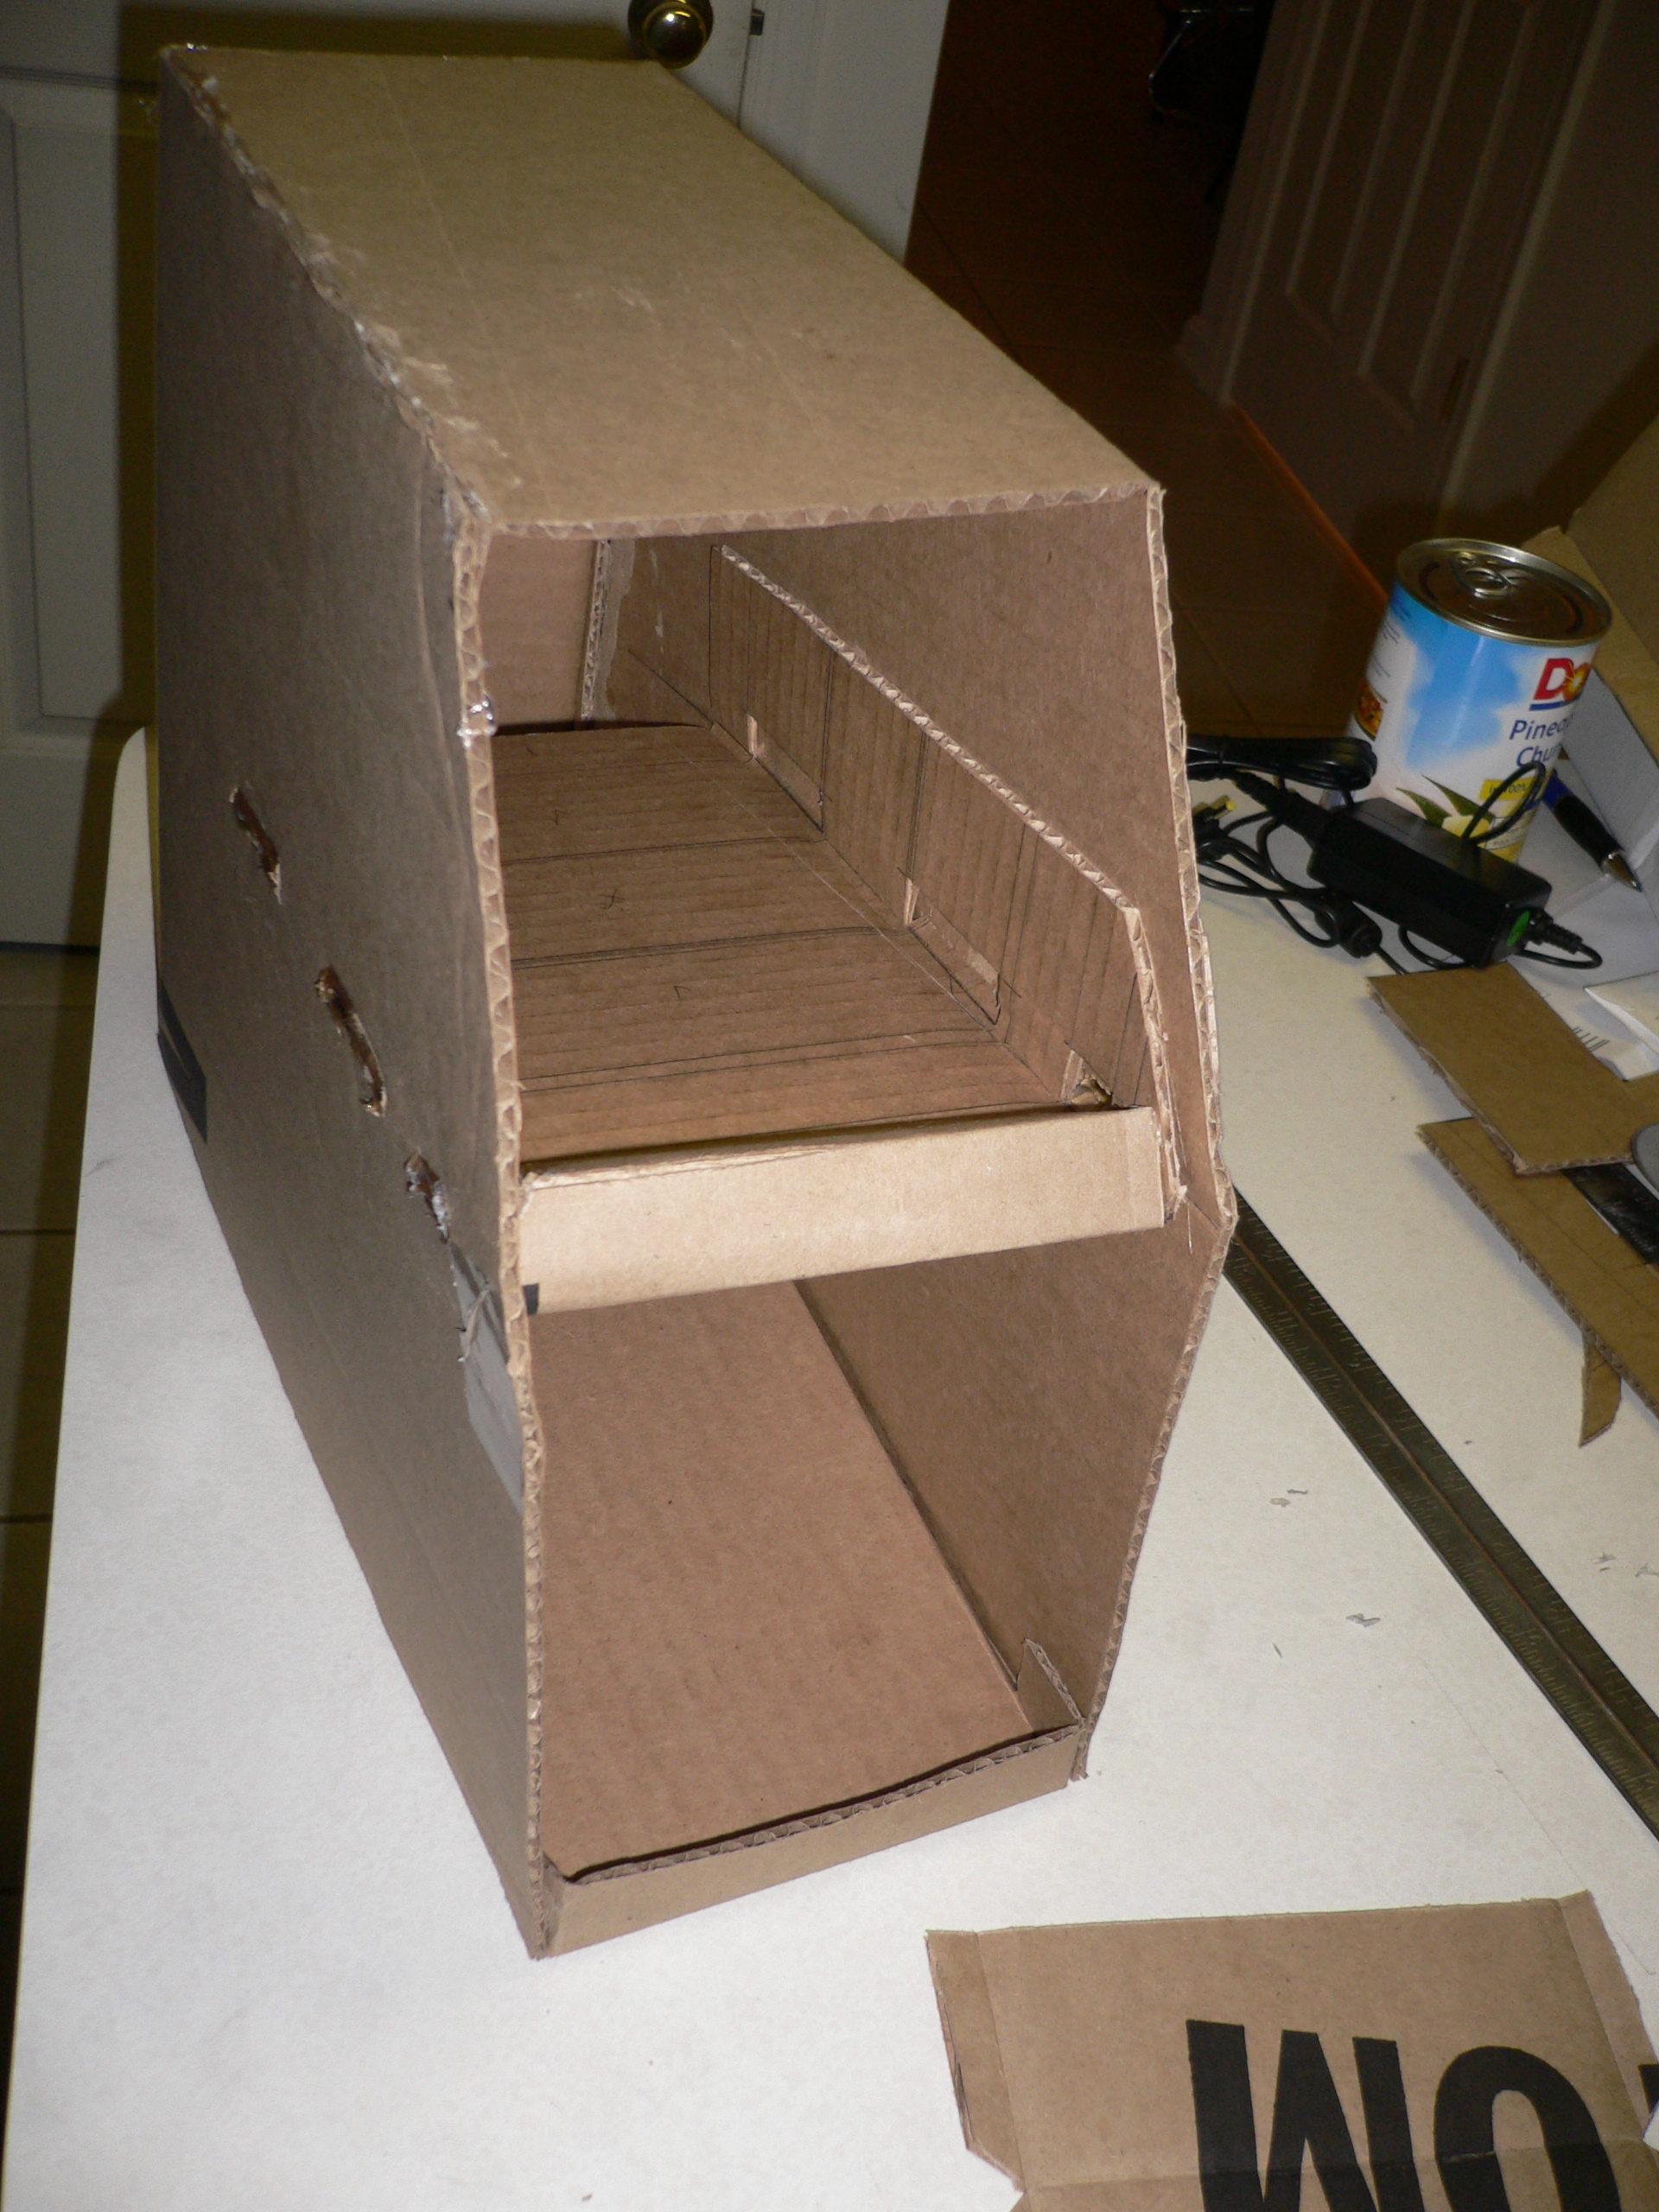 How to make a can organizer out of cardboard